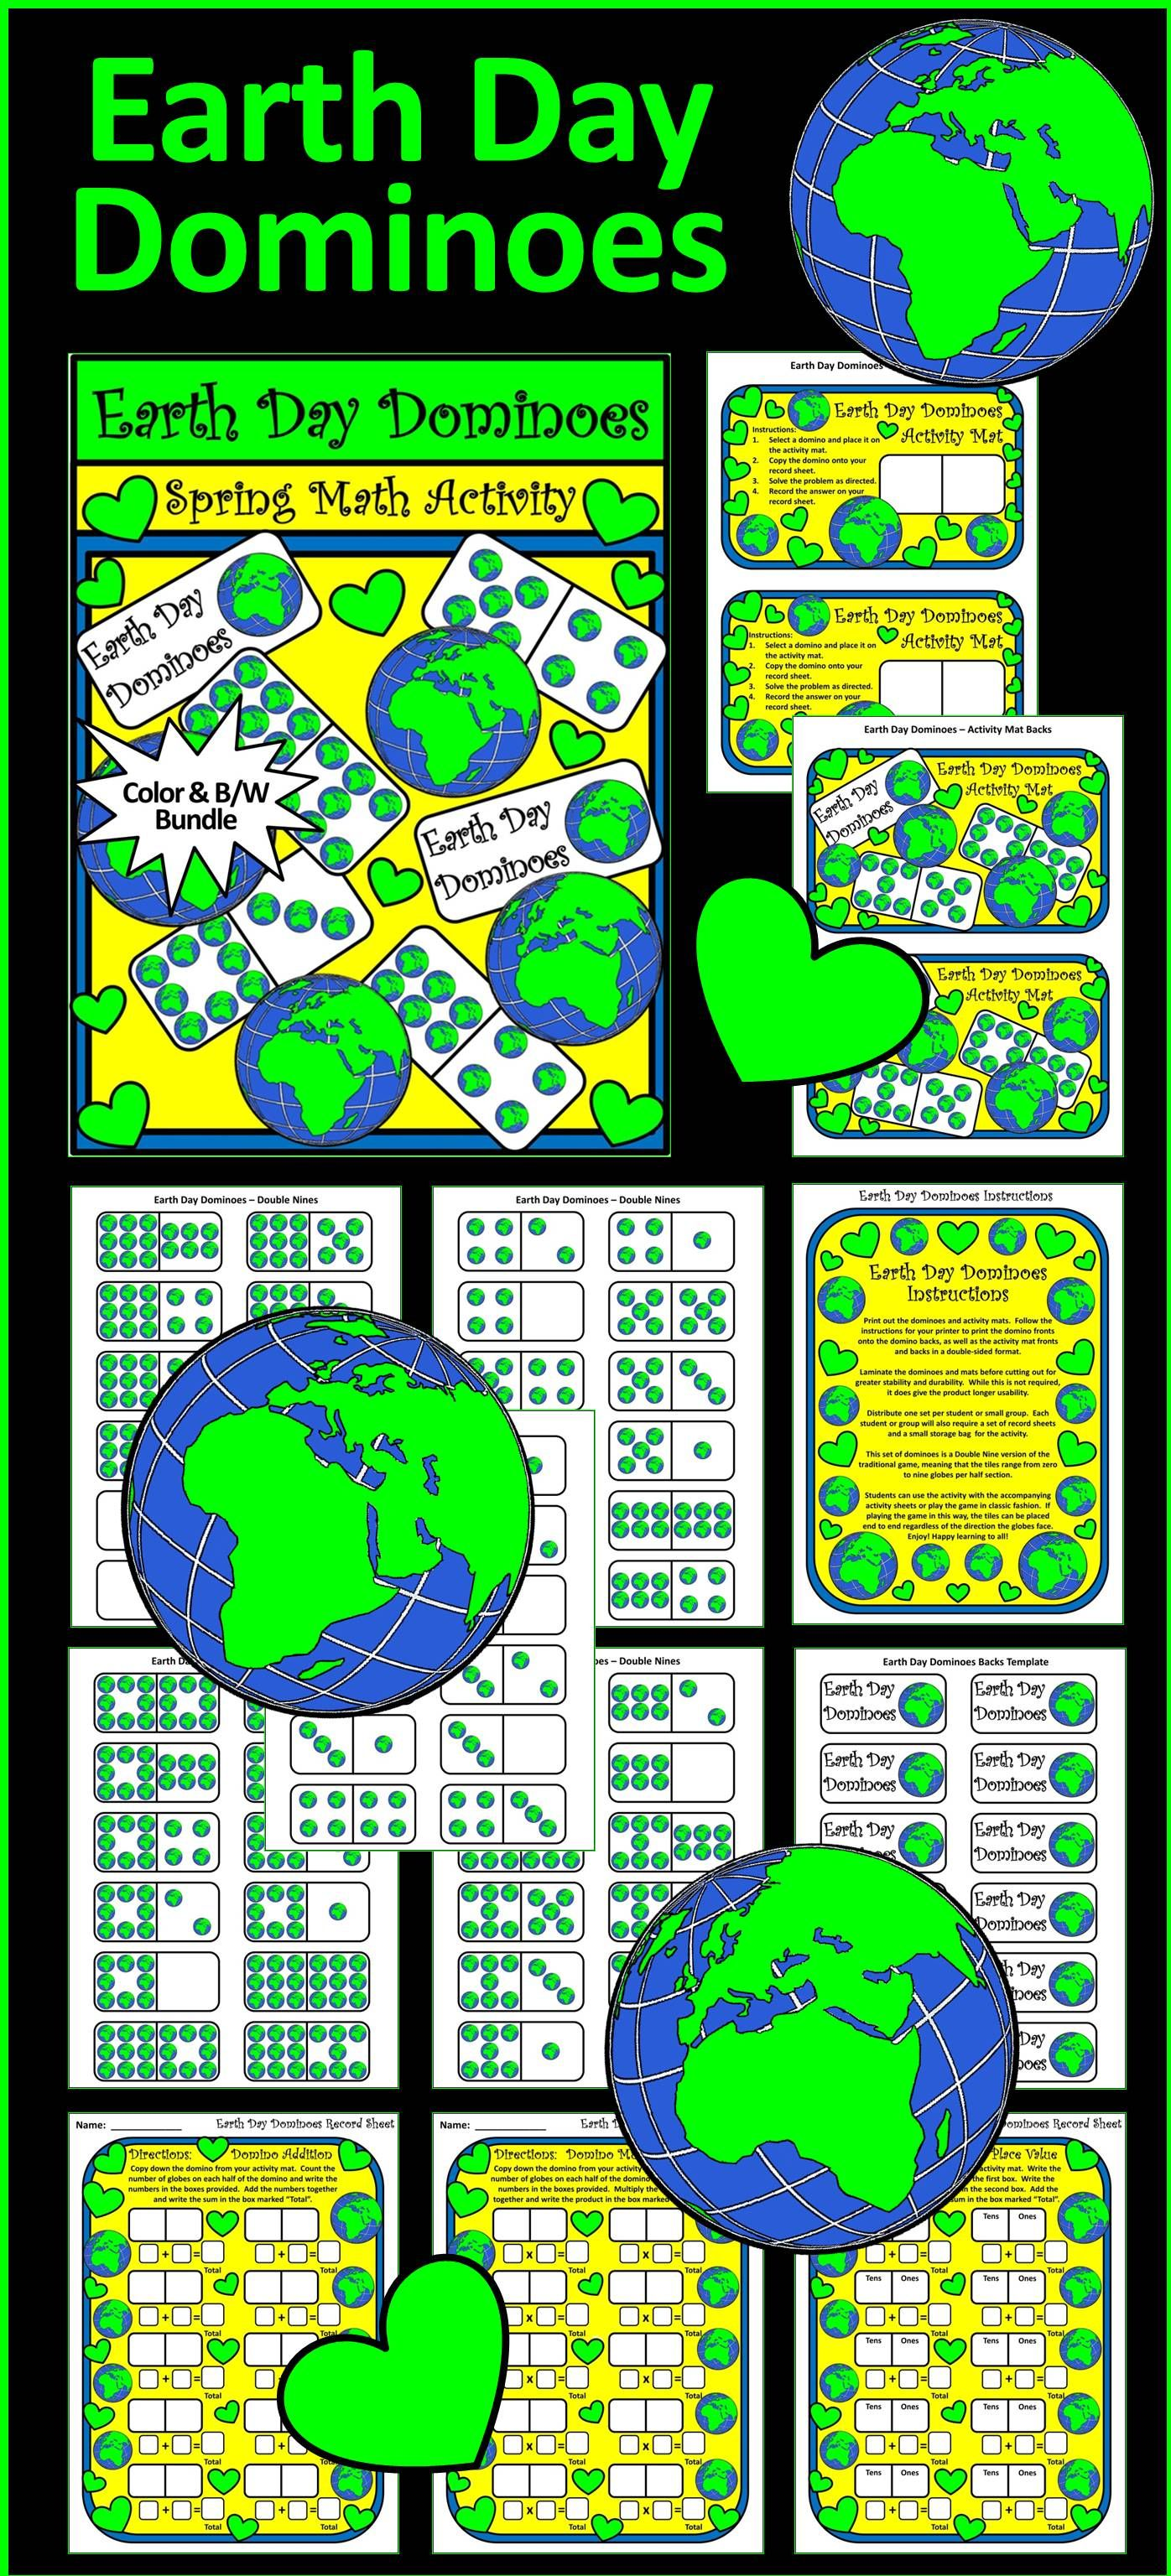 Earth Day Activities Earth Day Dominoes Spring Math